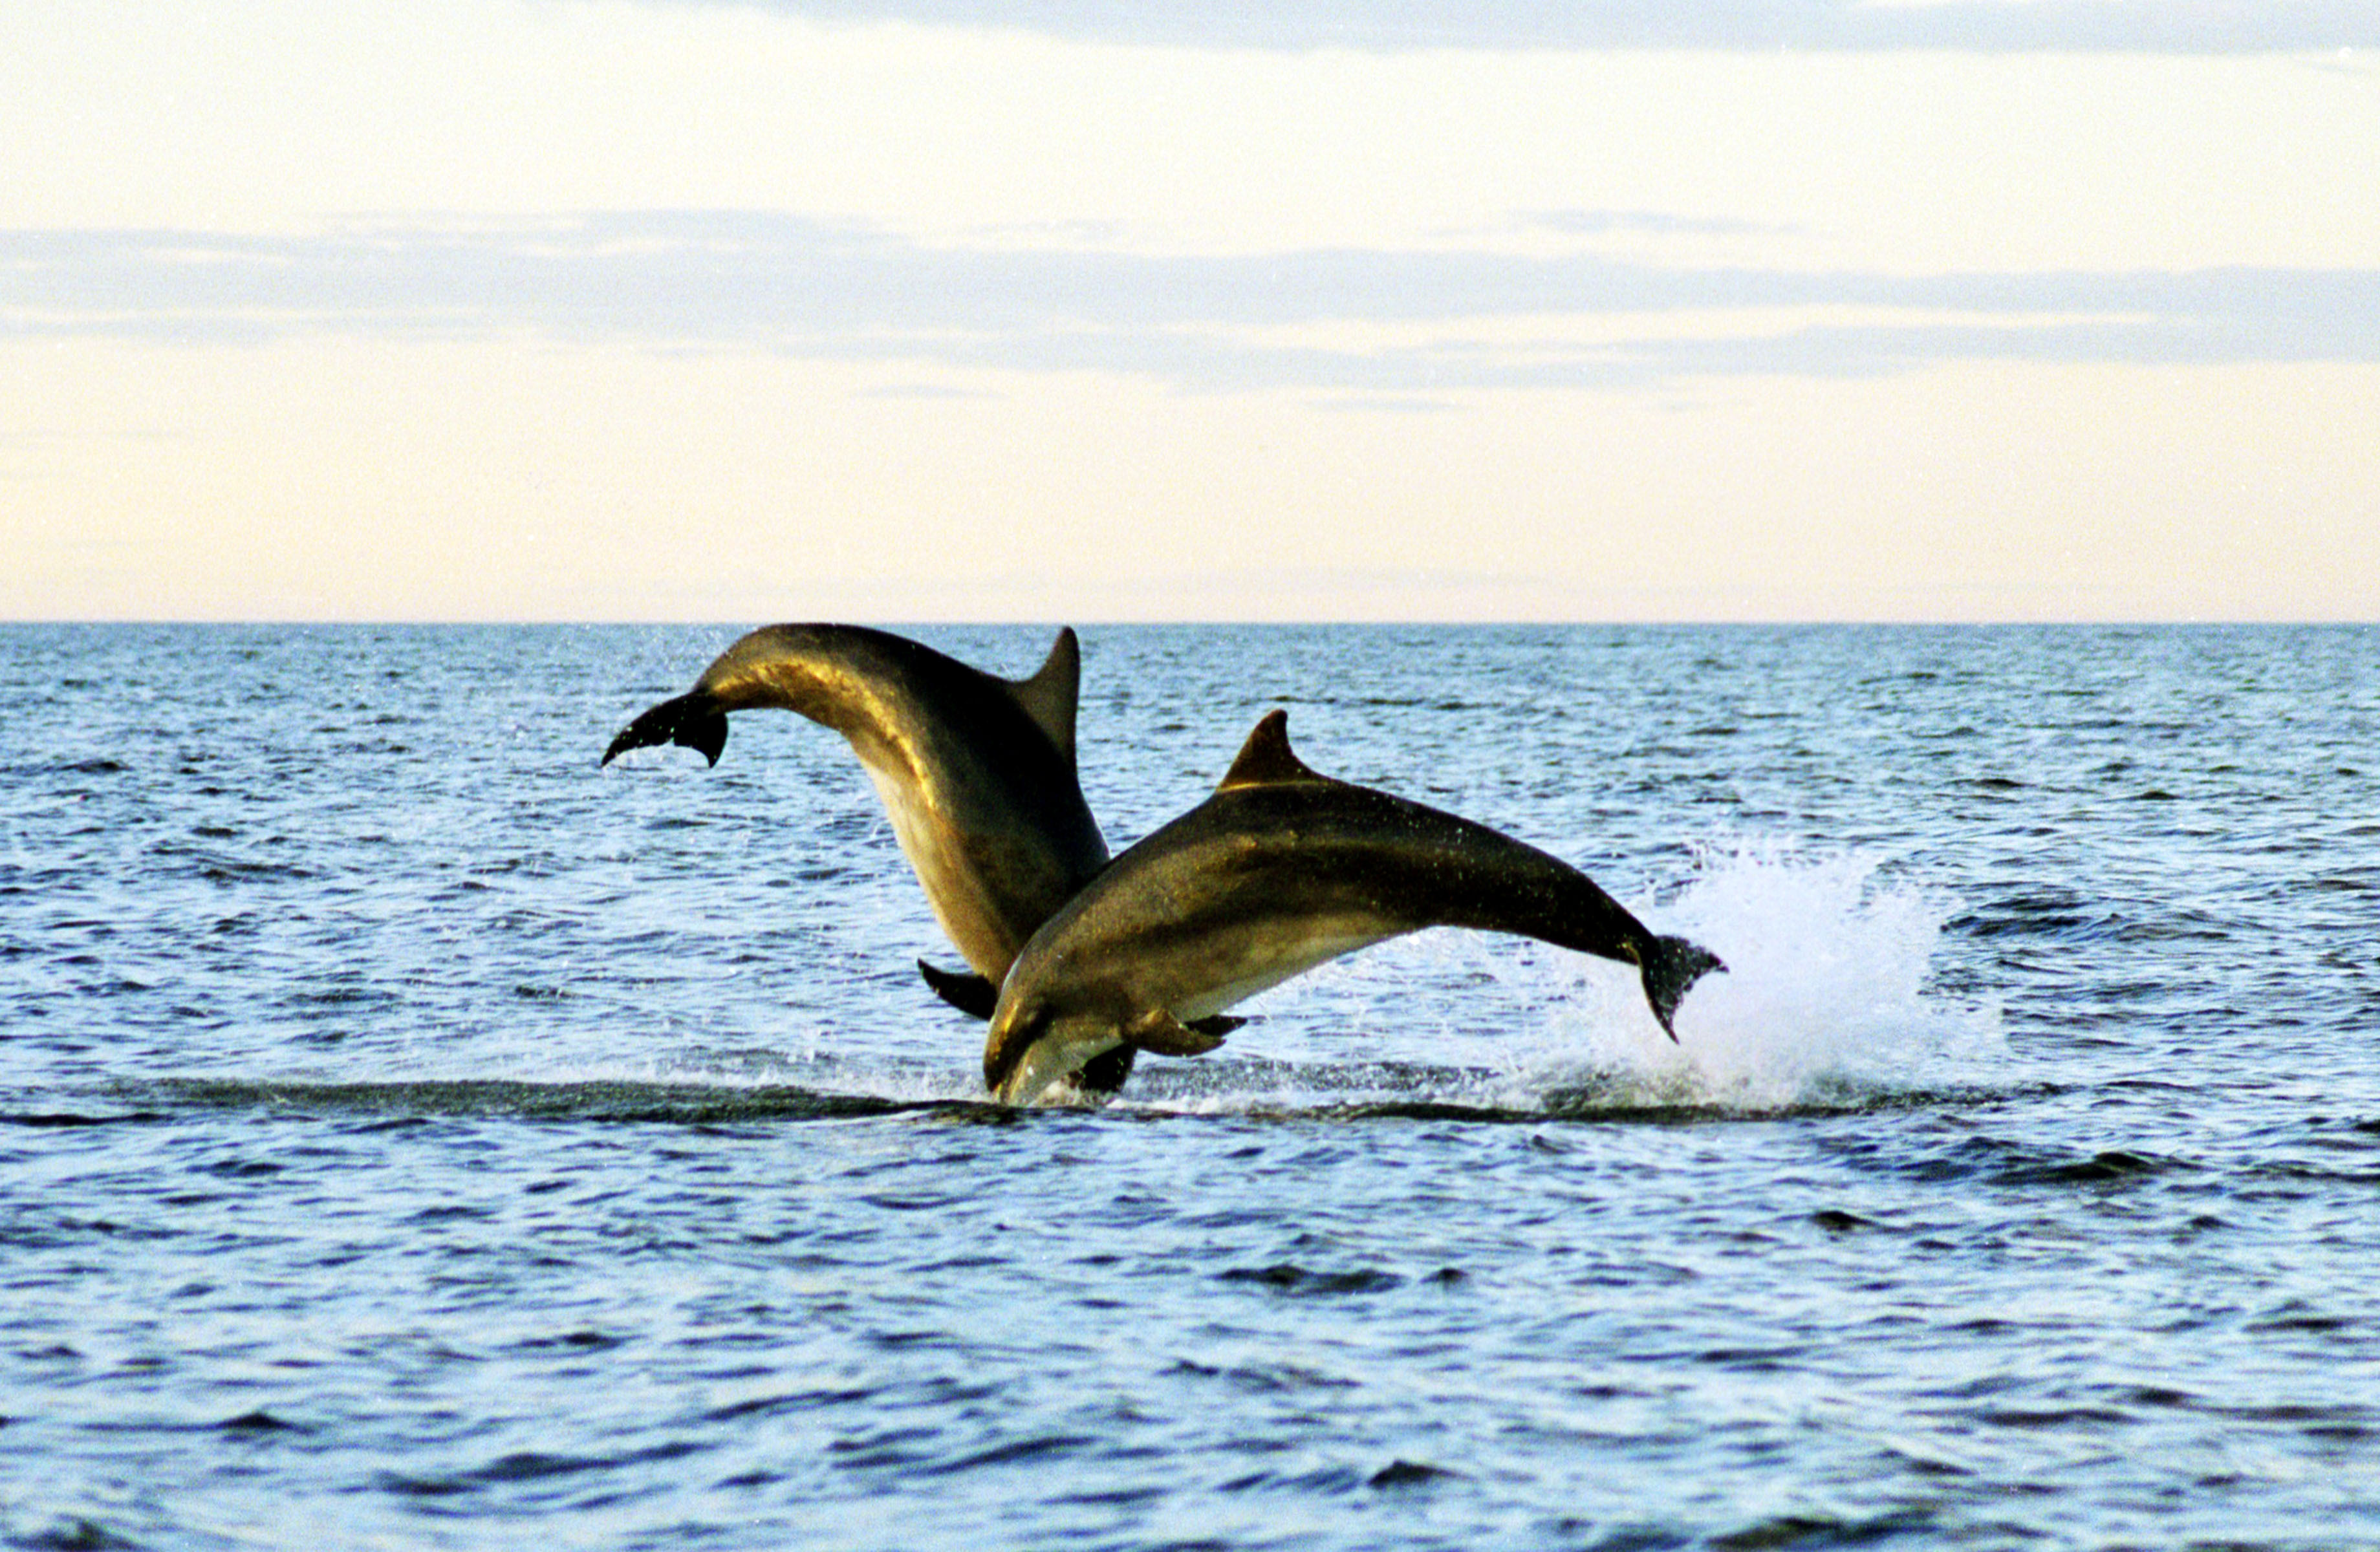 Dolphins-442_low_res.jpg#asset:1045